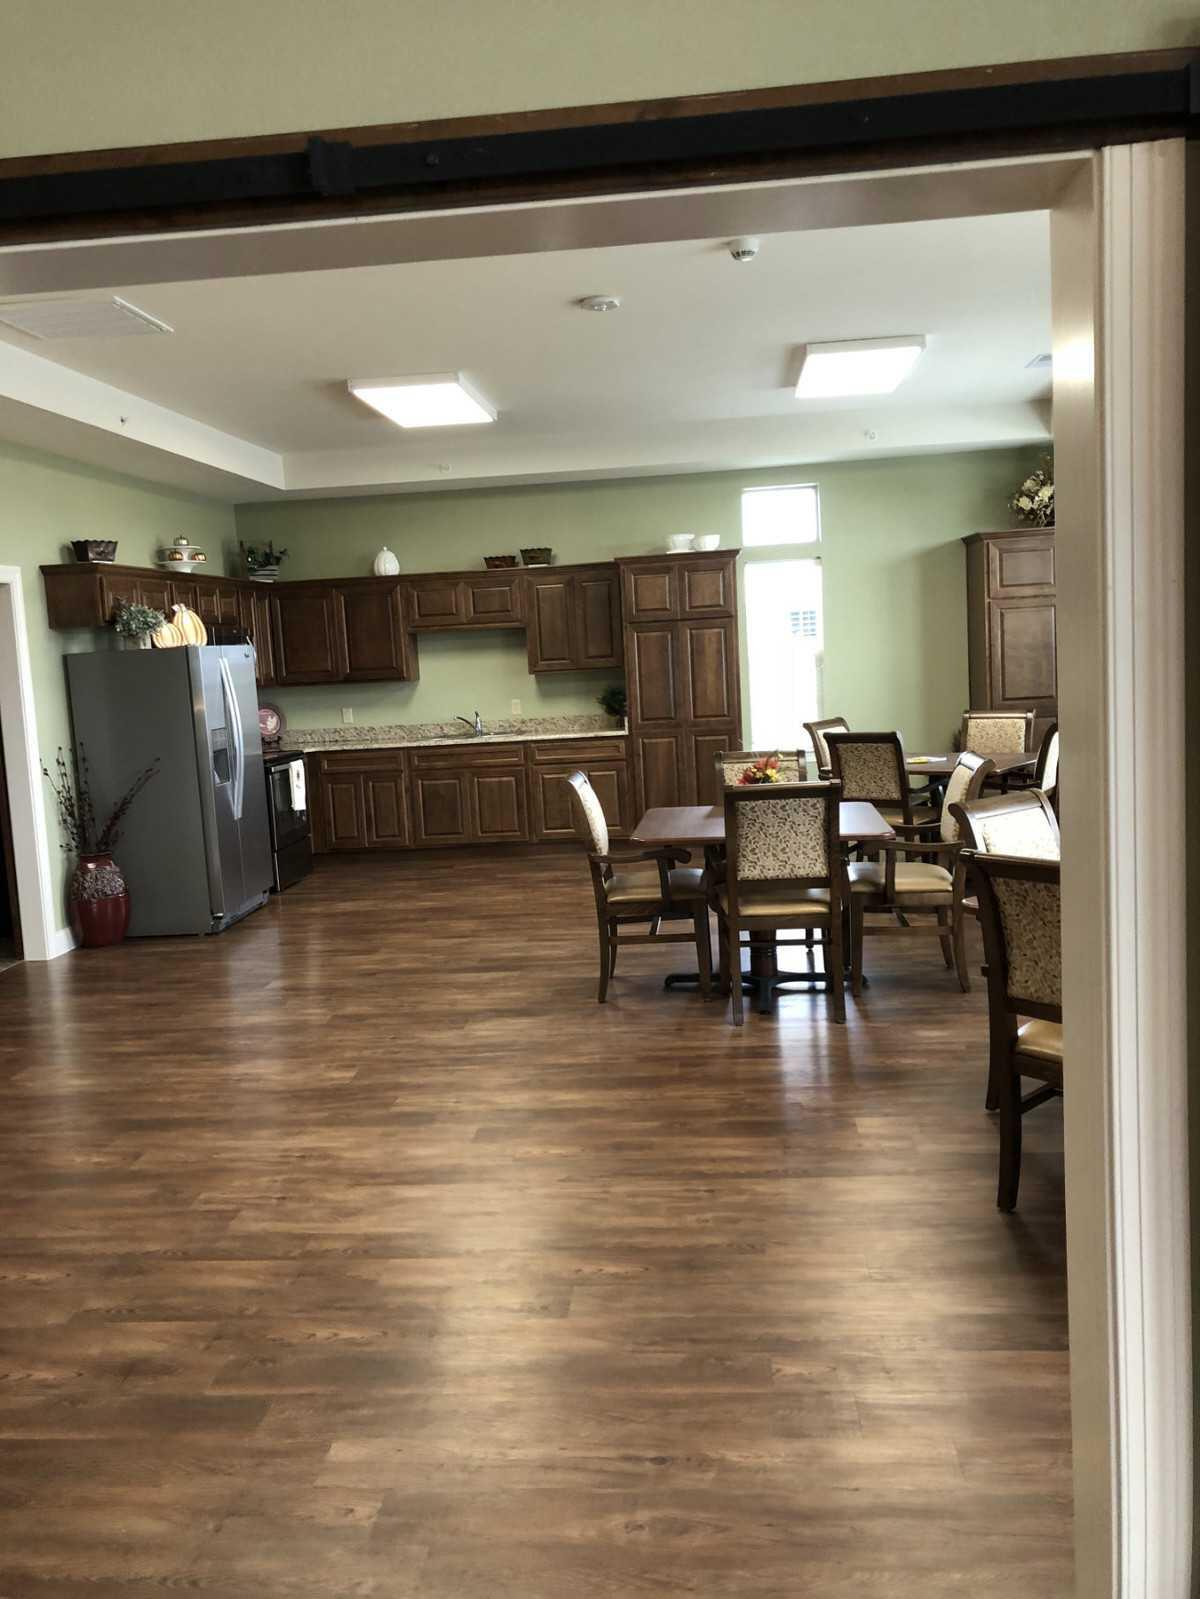 Photo of Country Lane Retirement Village, Assisted Living, Memory Care, O Neill, NE 1